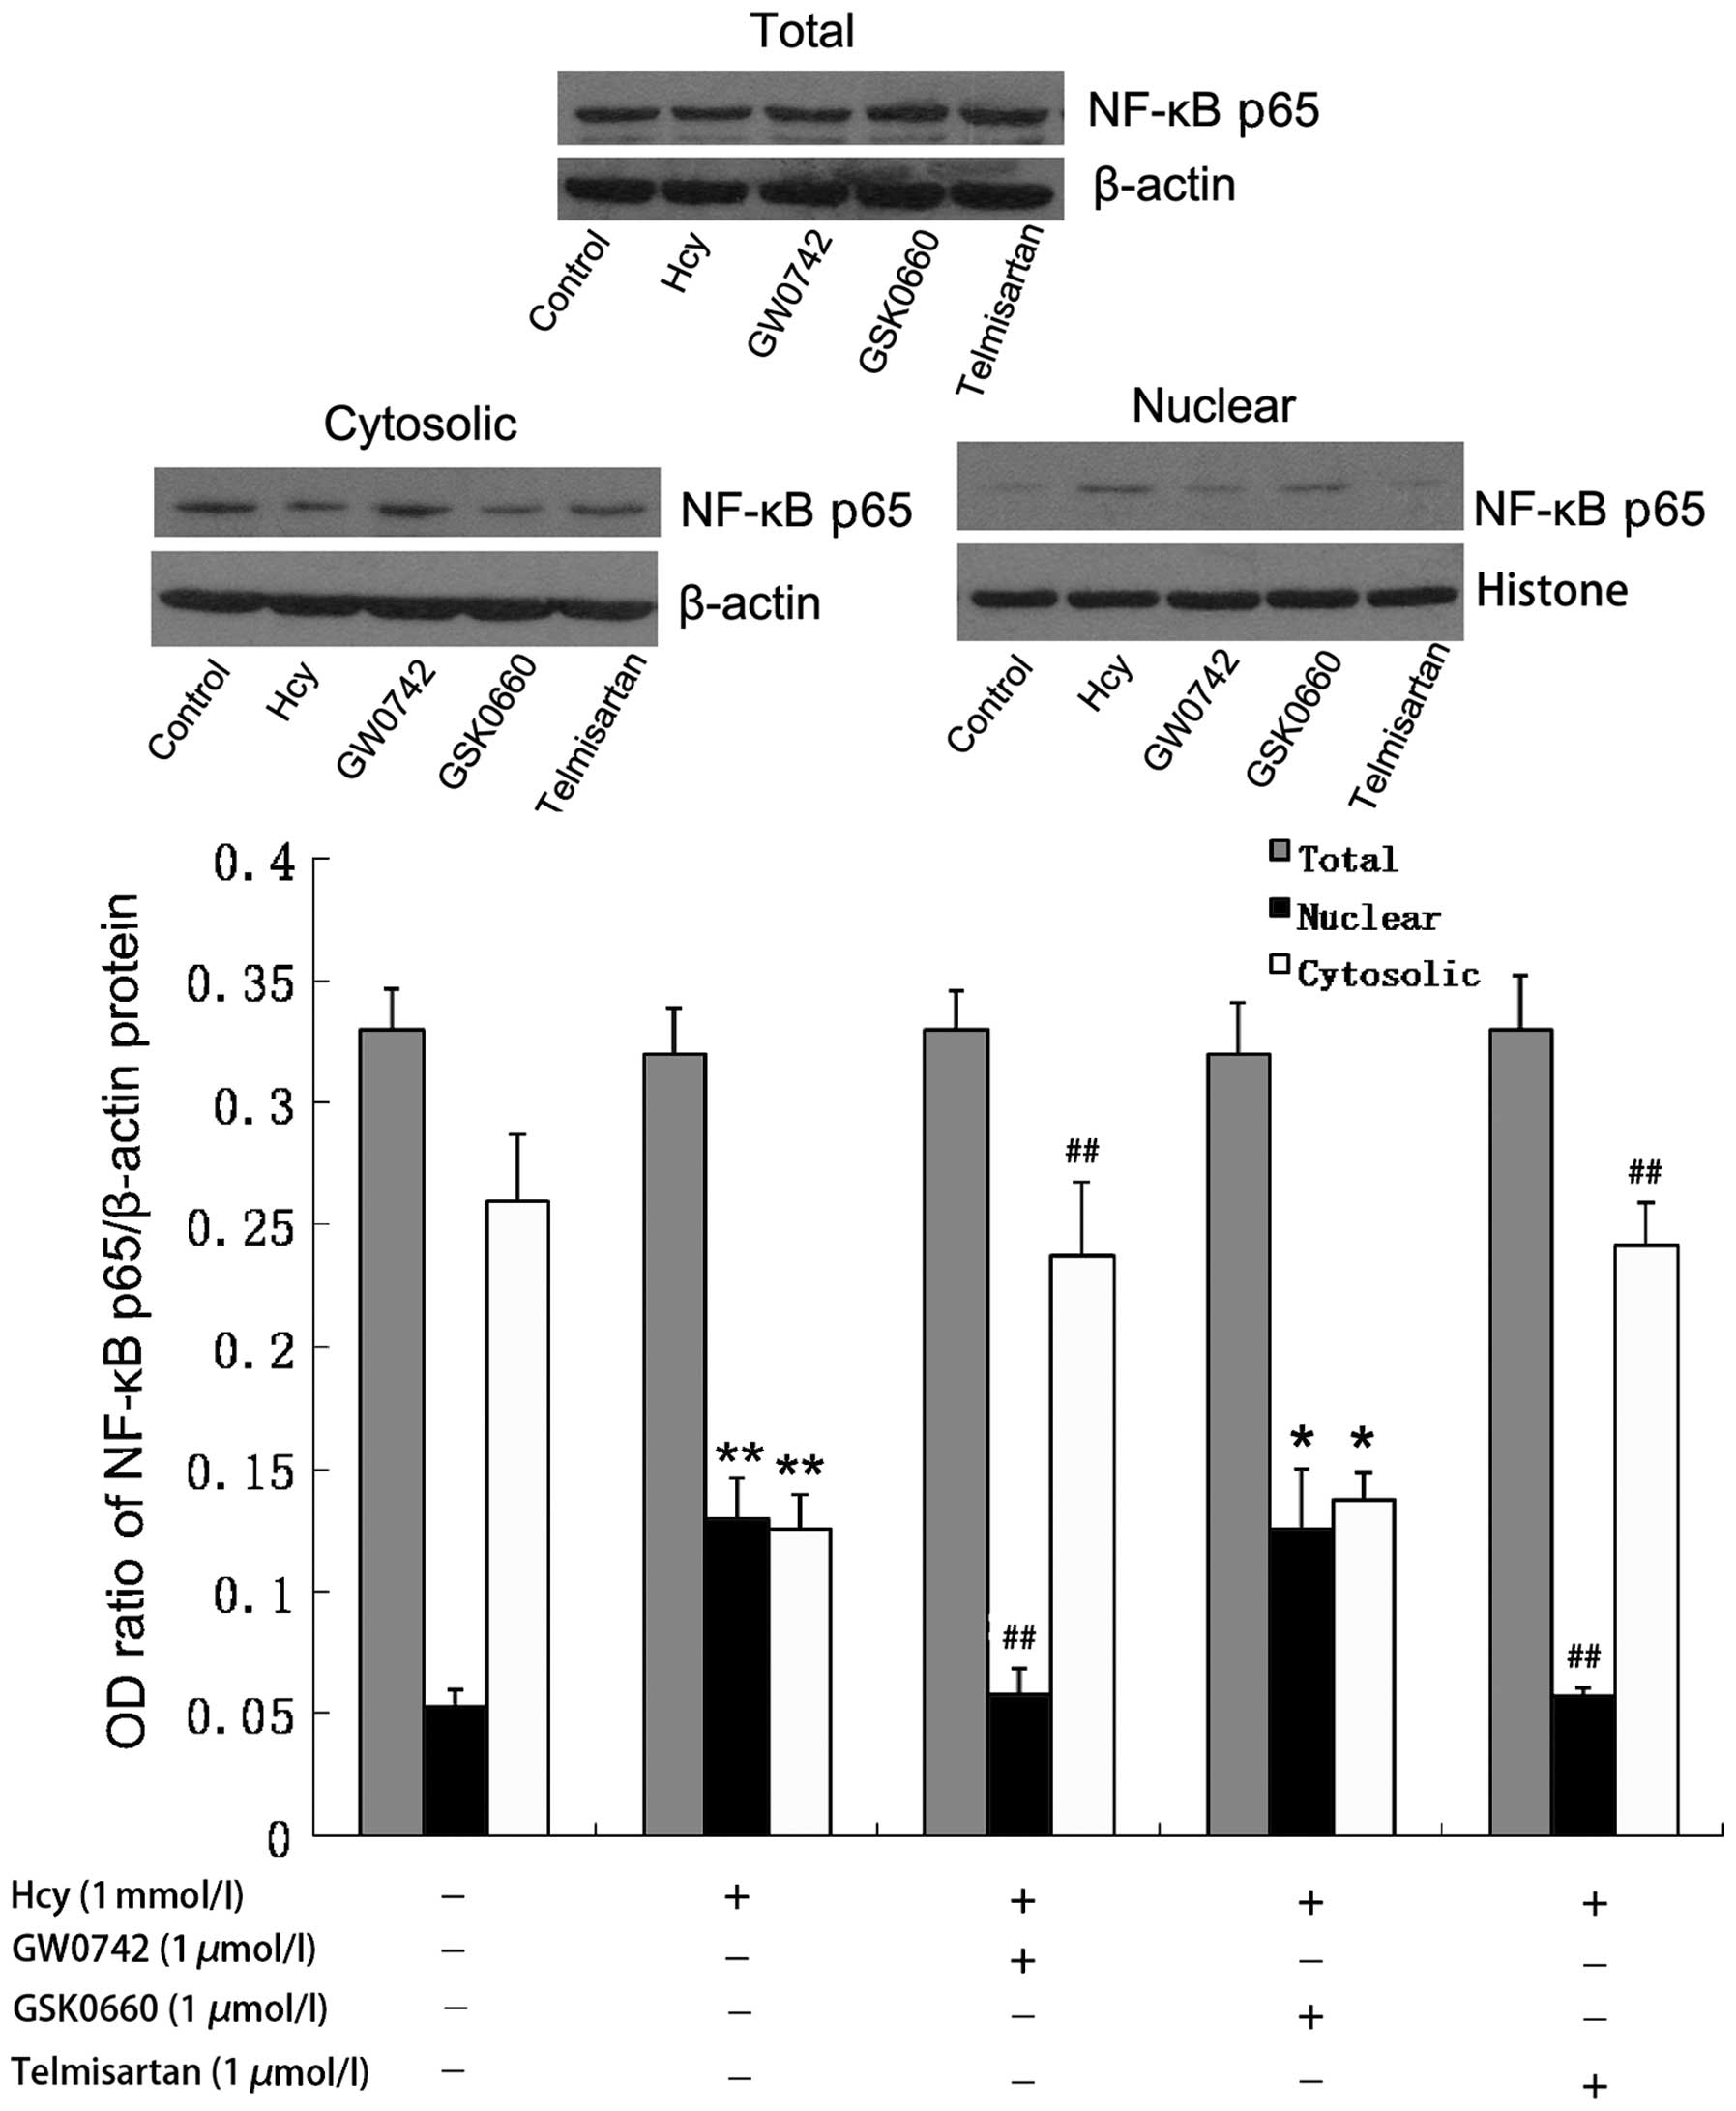 International Journal of Molecular Medicine Telmisartan inhibits the proinflammatory effects of homocysteine on human endothelial cells through activation of the peroxisome proliferator-activated receptor-δ pathway